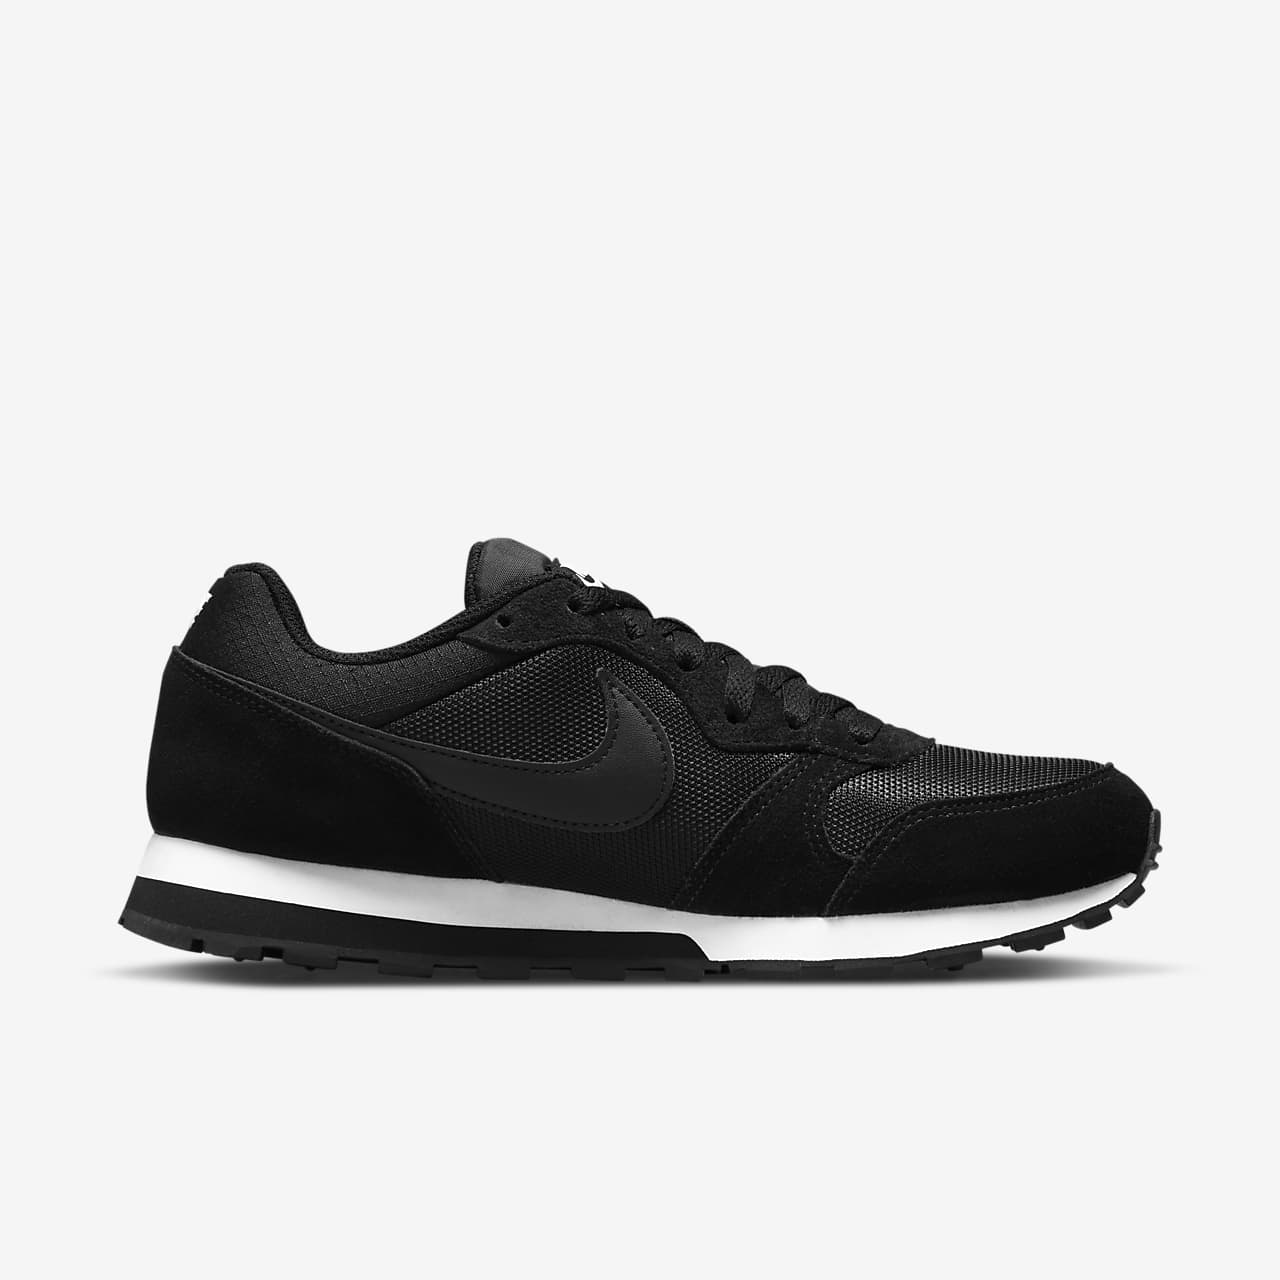 sale retailer 6c271 b9928 Women s Shoe. Nike MD Runner 2